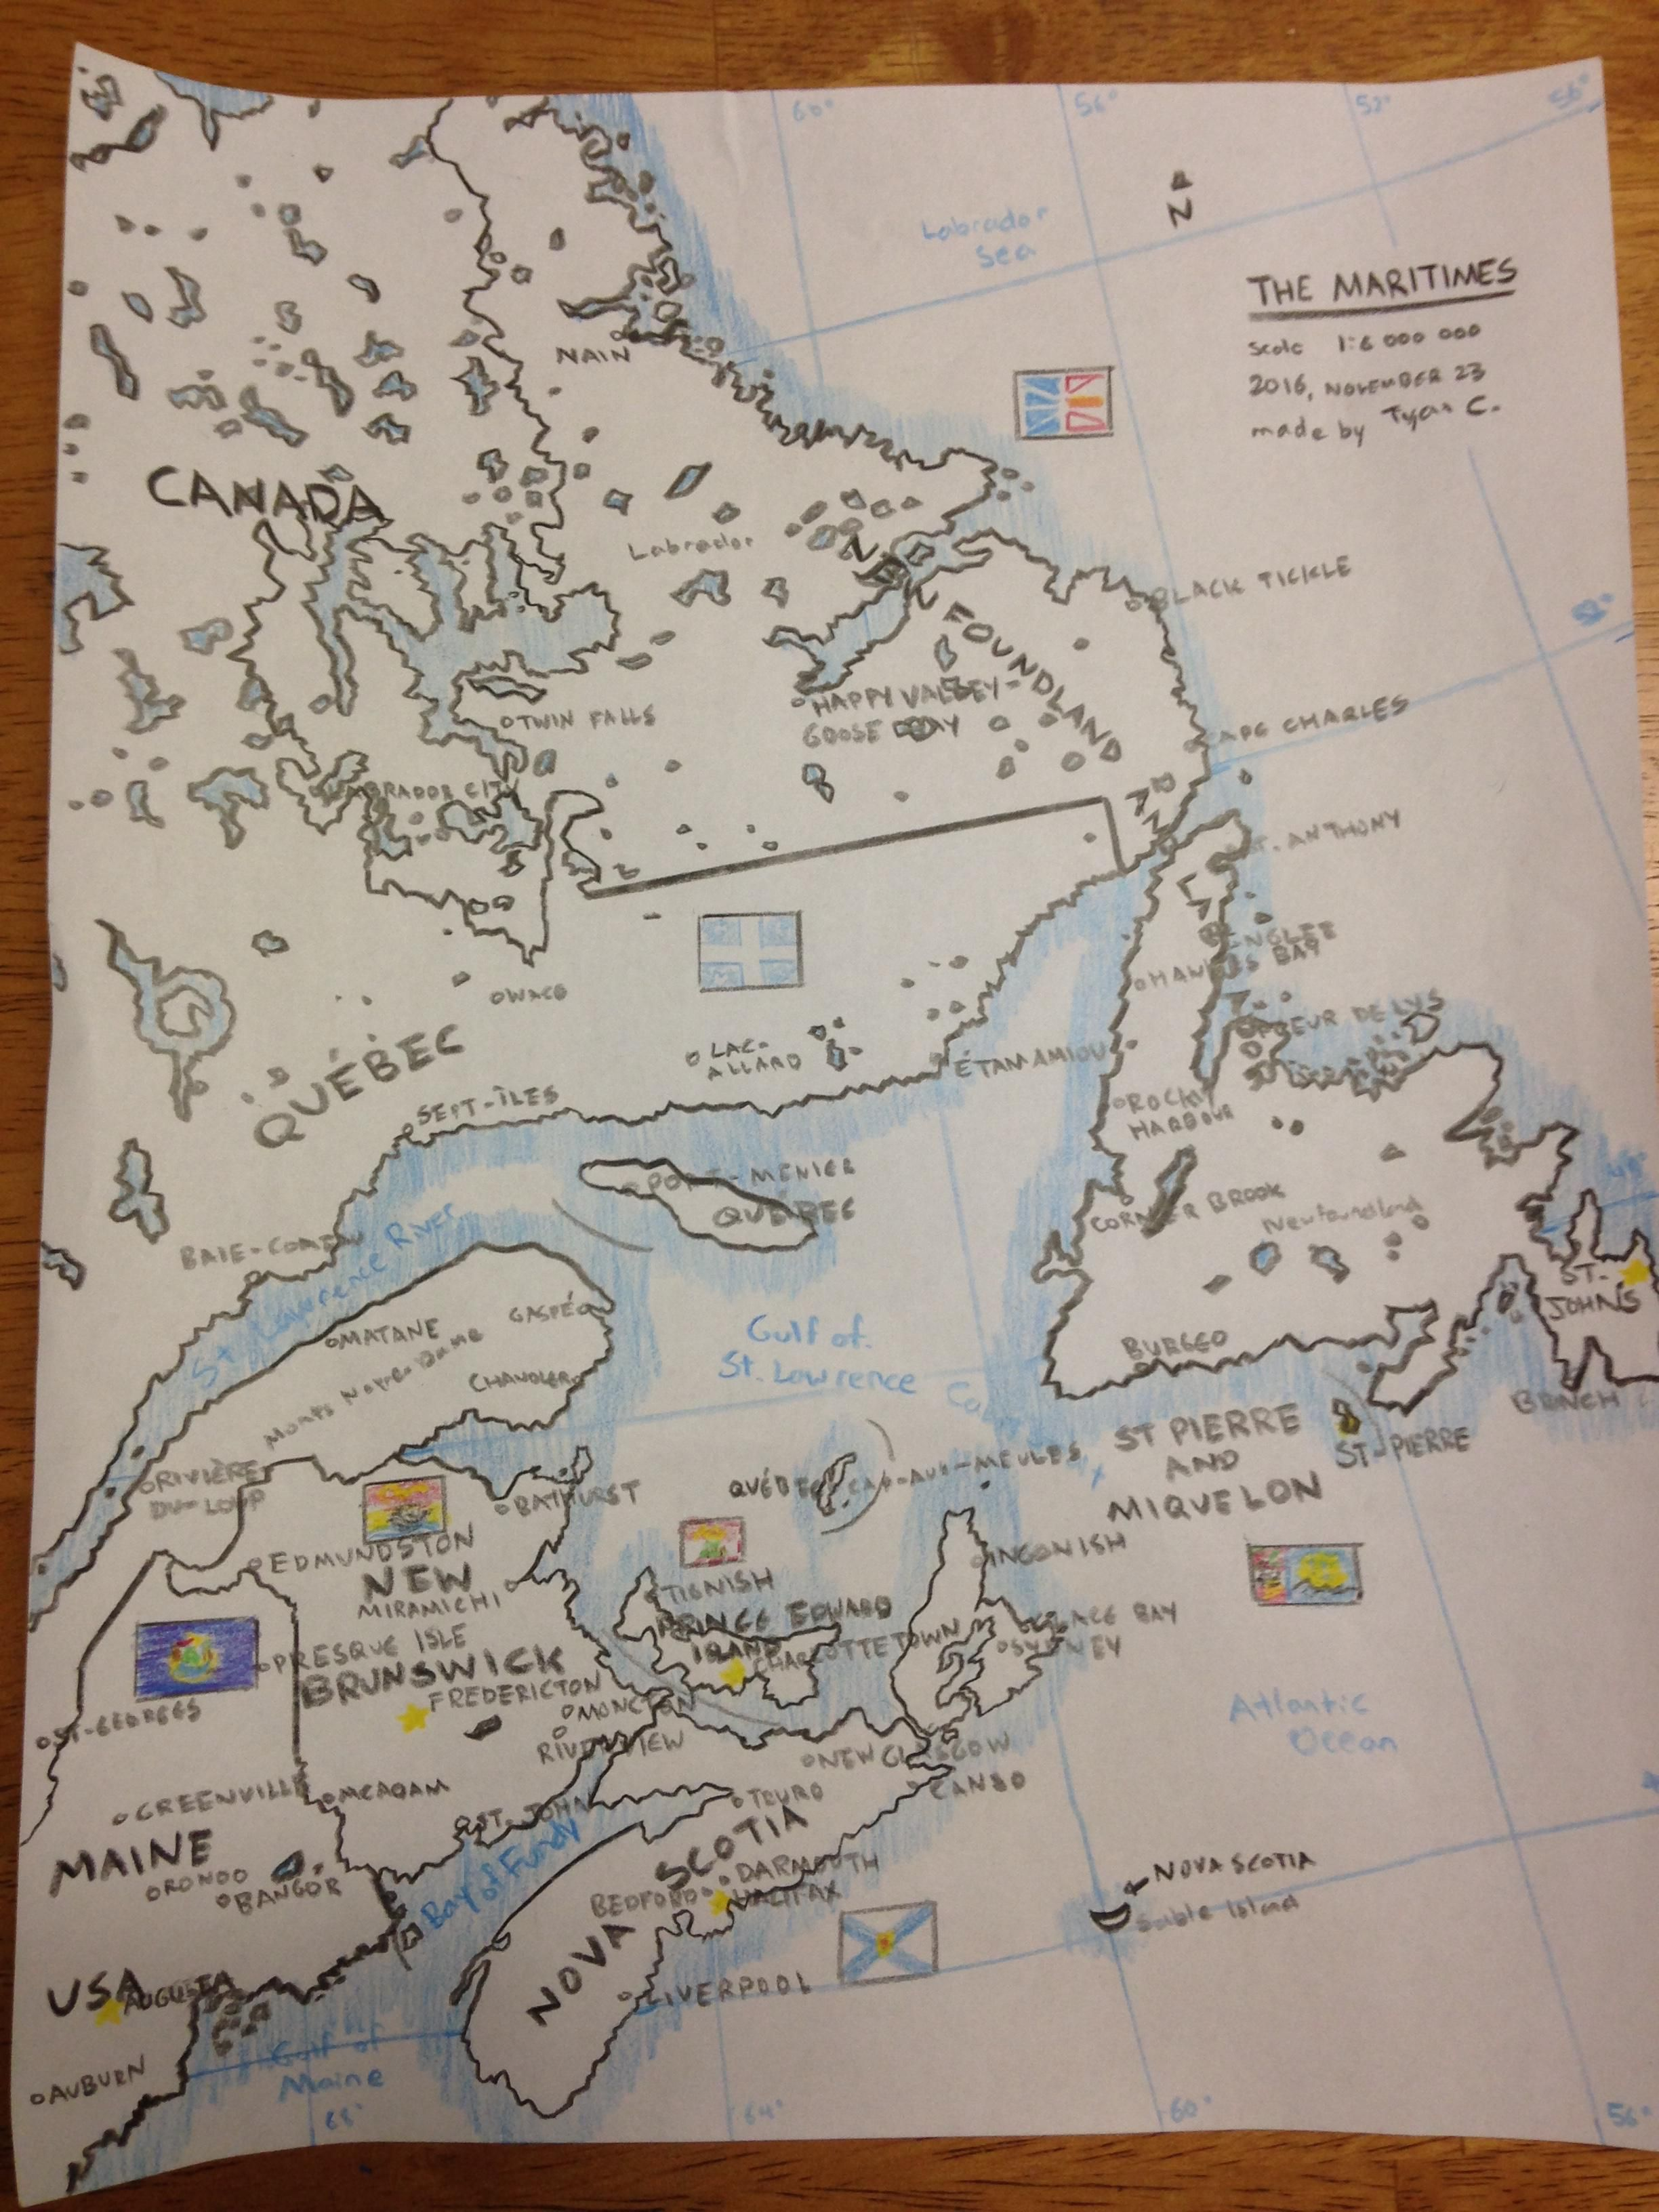 Canada maritime provinces, by tyanc13 #map #canada #maritimes | maps on old mexico map, vintage canada, old map switzerland, abbotsford canada, old world map, old map europe, old map italy, historical events of canada, trail bc canada, ancient maps of canada, snowshoeing canada, old ads for tourism canada, old house canada, historical maps of canada, street map montreal qc canada, atlas de canada, geographic regions of canada, french canada, old map singapore, brochure of canada,